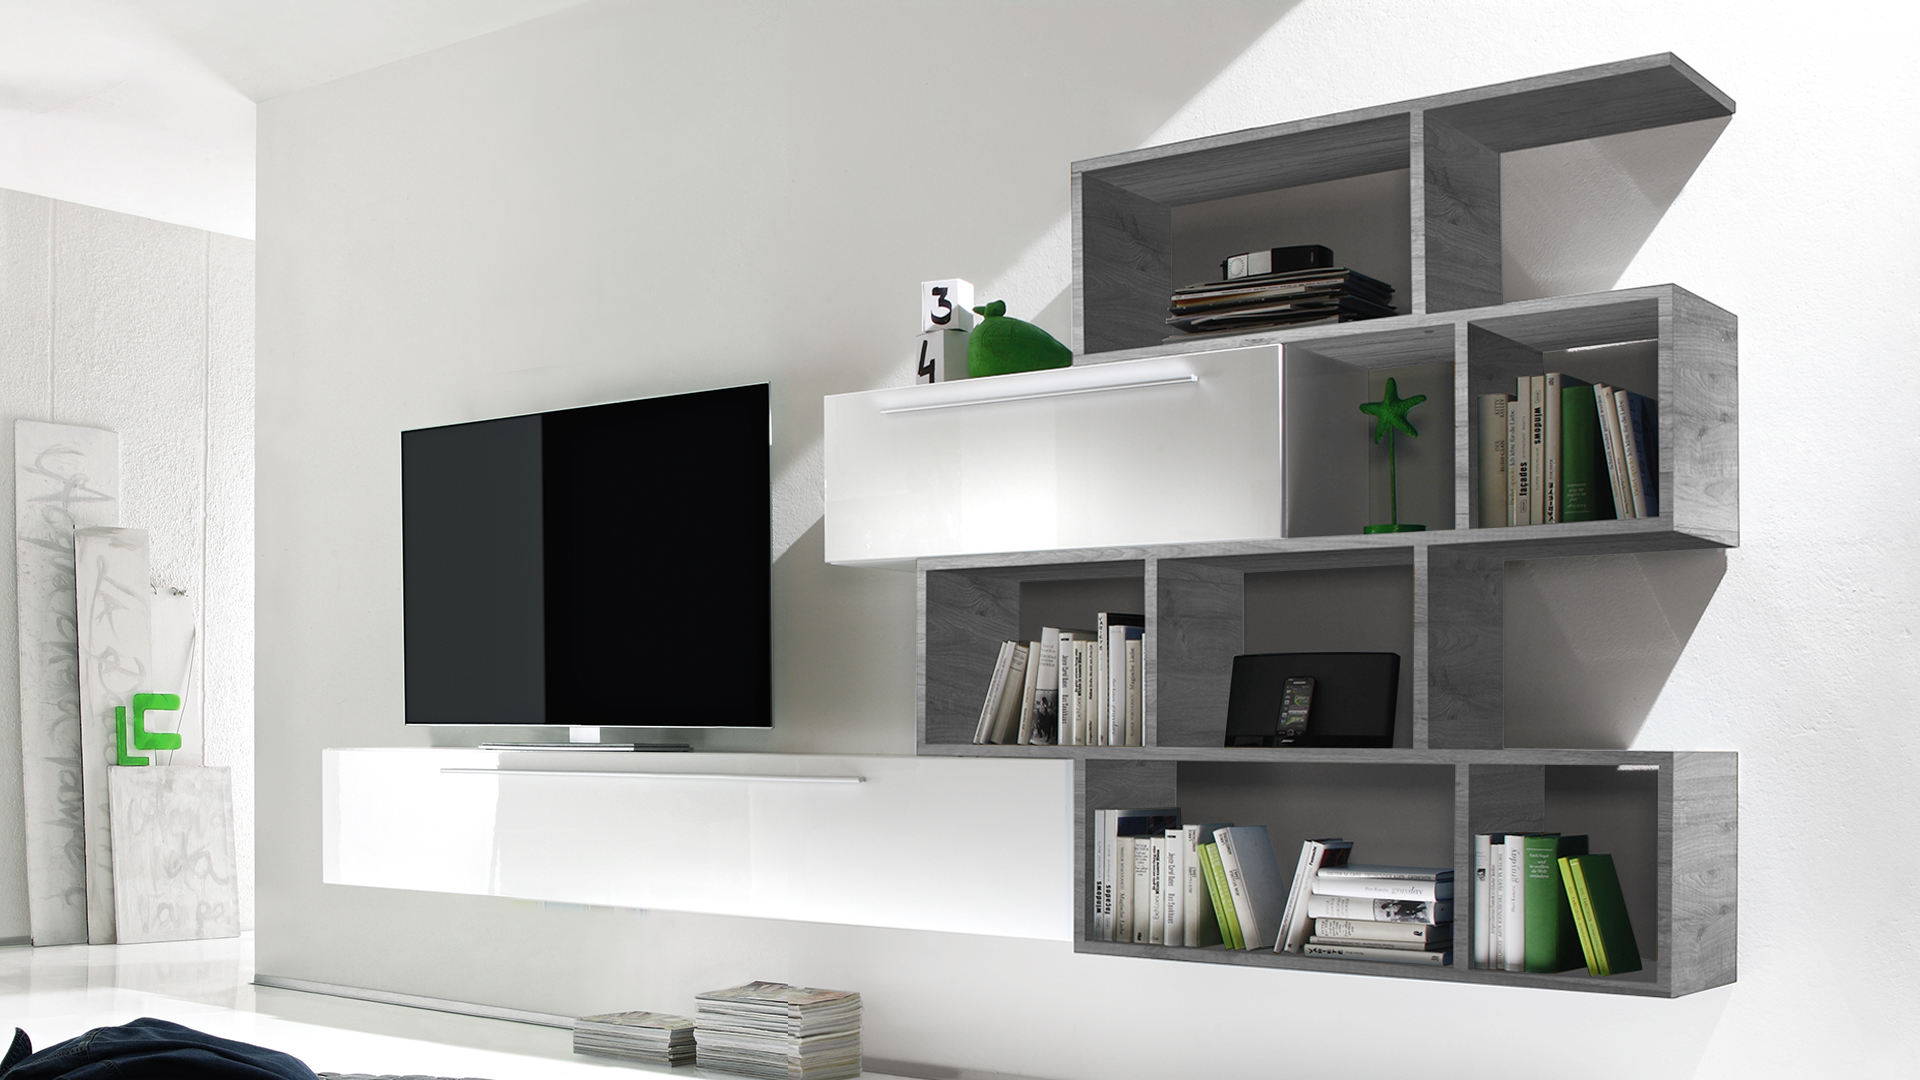 Meuble tv suspendu gris id es de d coration int rieure for Des idees de decoration interieure